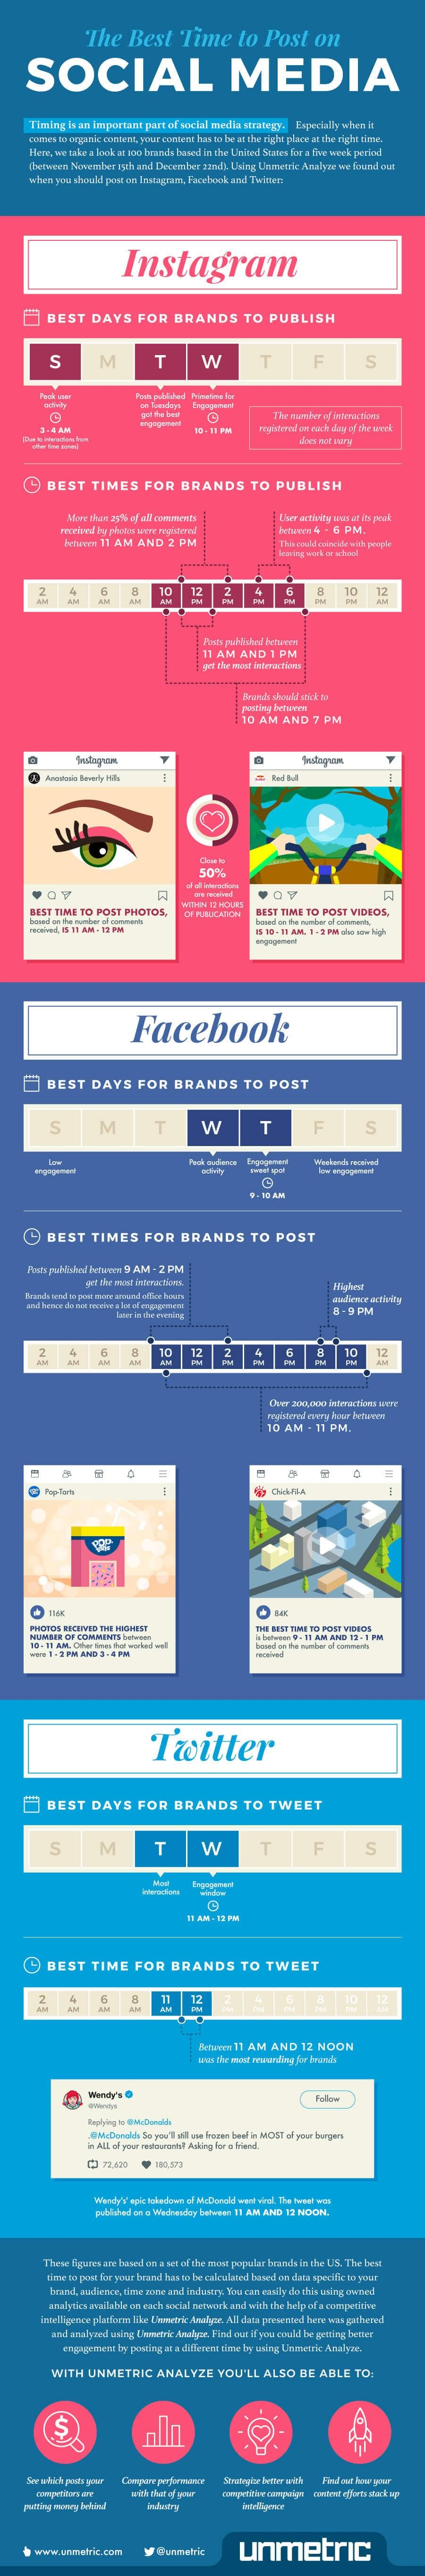 Timing is an important part of social media strategy. Especially when it comes to organic content. your content has to be at the right place at the right time. Check out this infographic and discover the best time to post on social media.